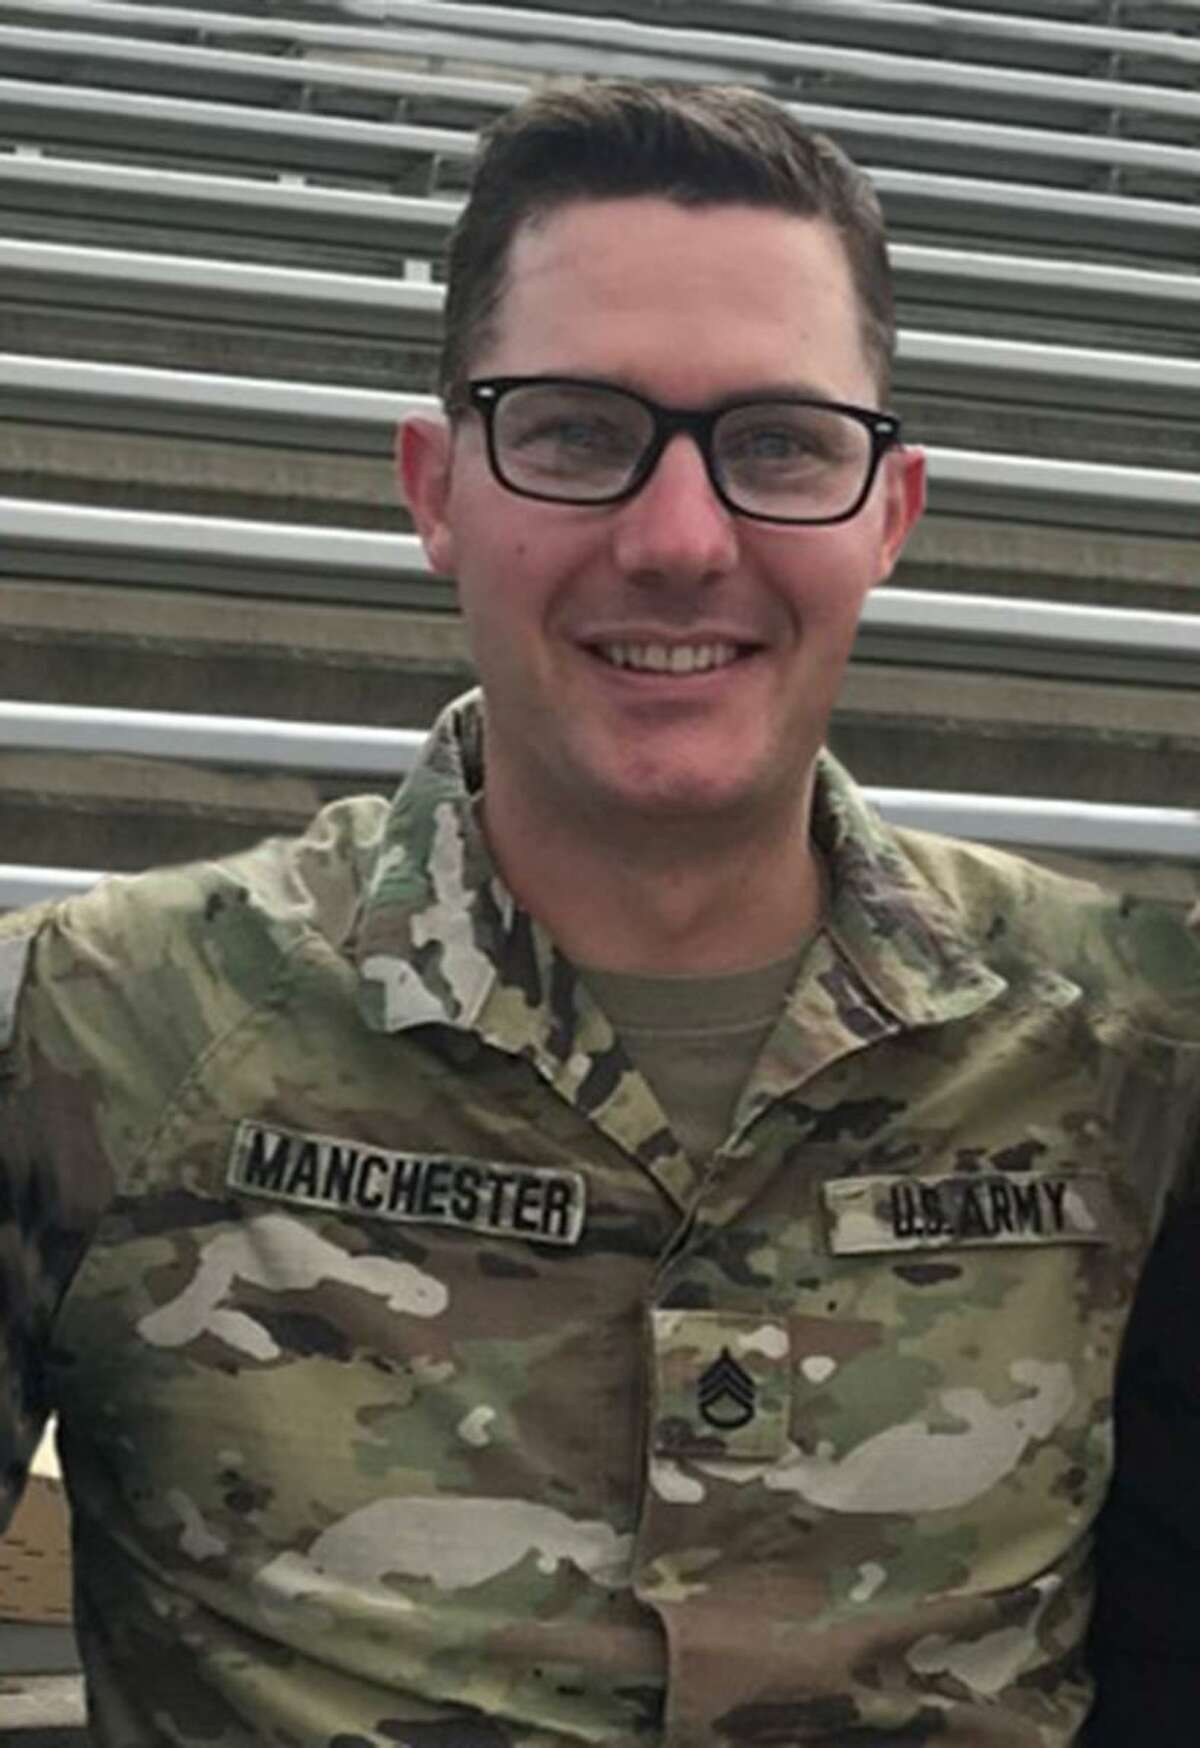 A Texas National Guards soldier died Tuesday in a non-combat related incident while supporting Operation Spartan Shield at Camp Arifjan, Kuwait. Staff Sgt. Timothy Manchester, 34, of Austin, had deployed in September with the 36th Infantry Division, Texas Army National Guard, headquartered in Austin.